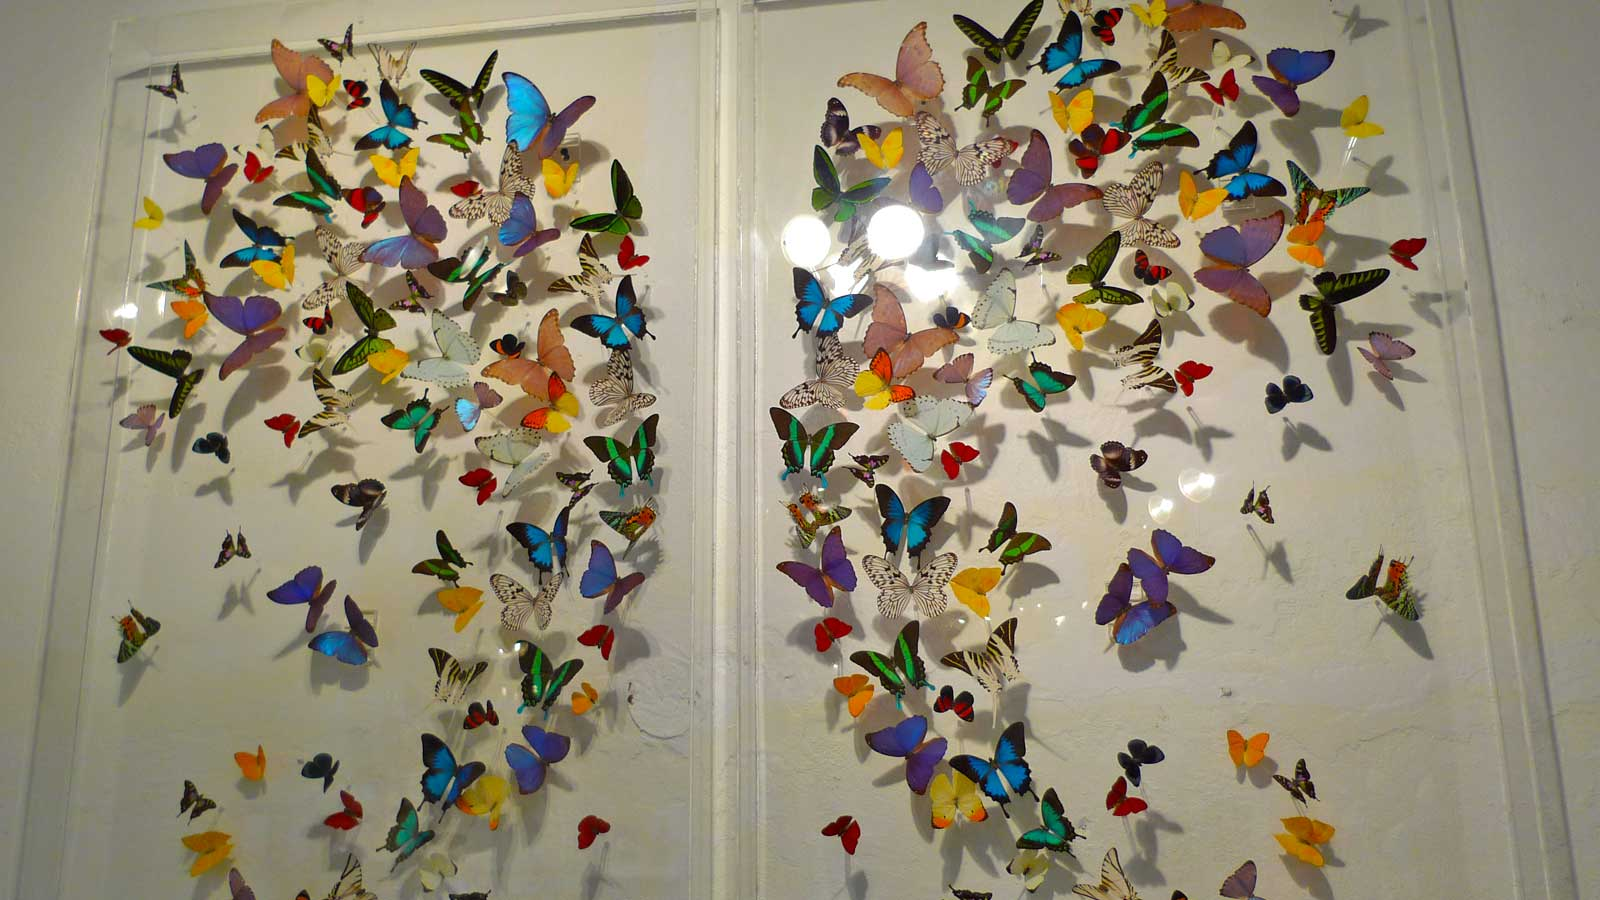 A Unique Gallery In Puerto Rico Highlights The Beauty Of Nature. Keri Jones Discovers Butterfly Art In The Old City Of San Juan